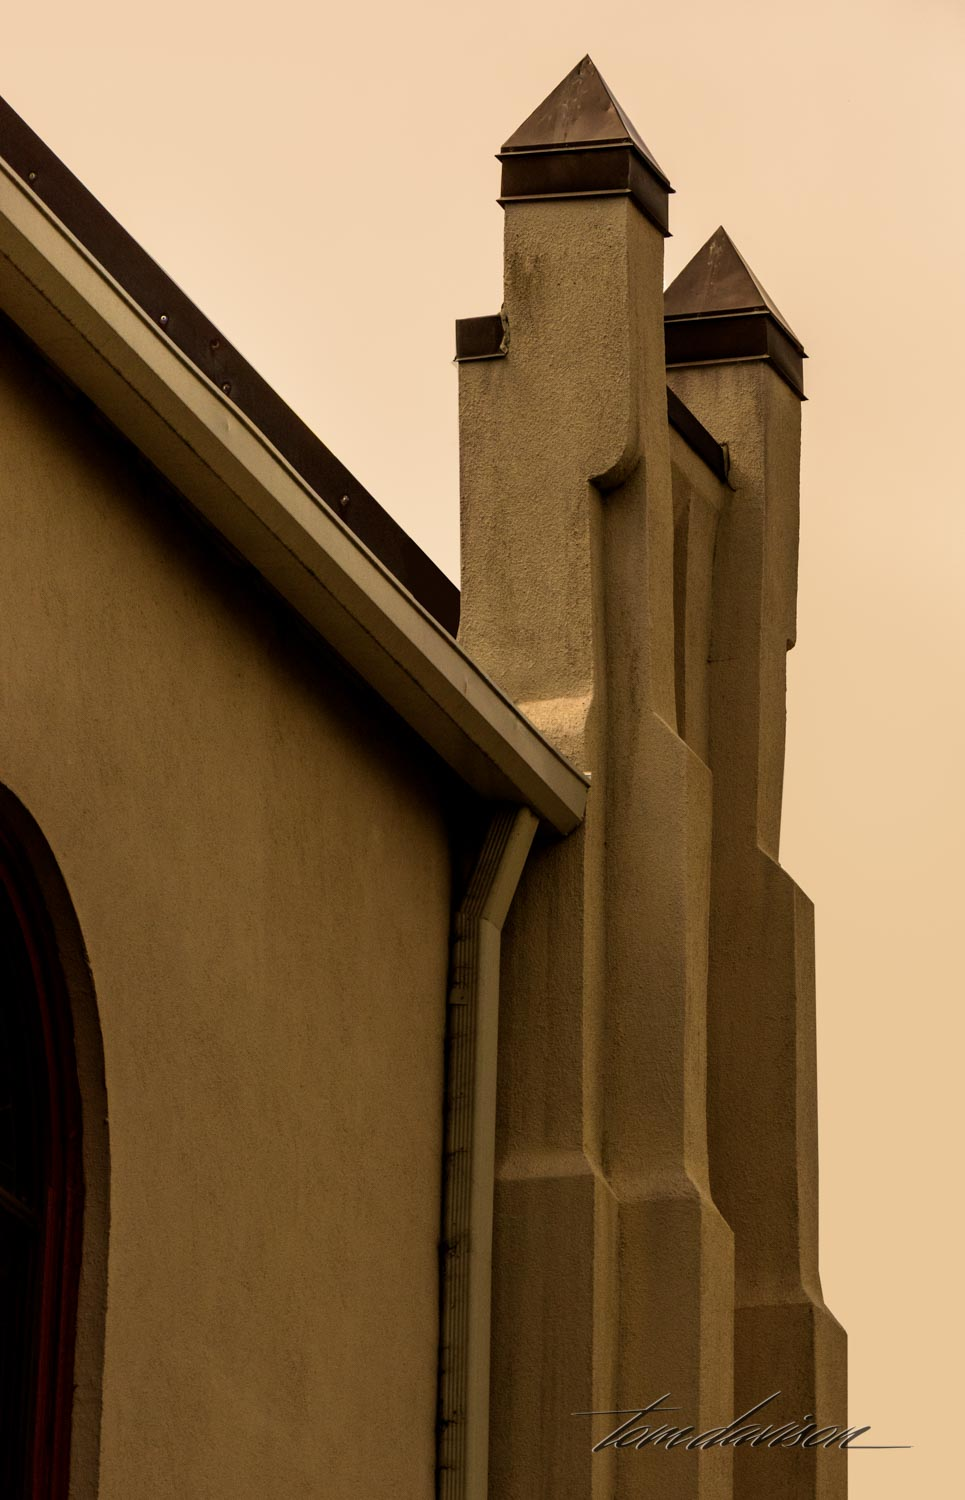 Detail from Christ Episcopal Church built in 1830.